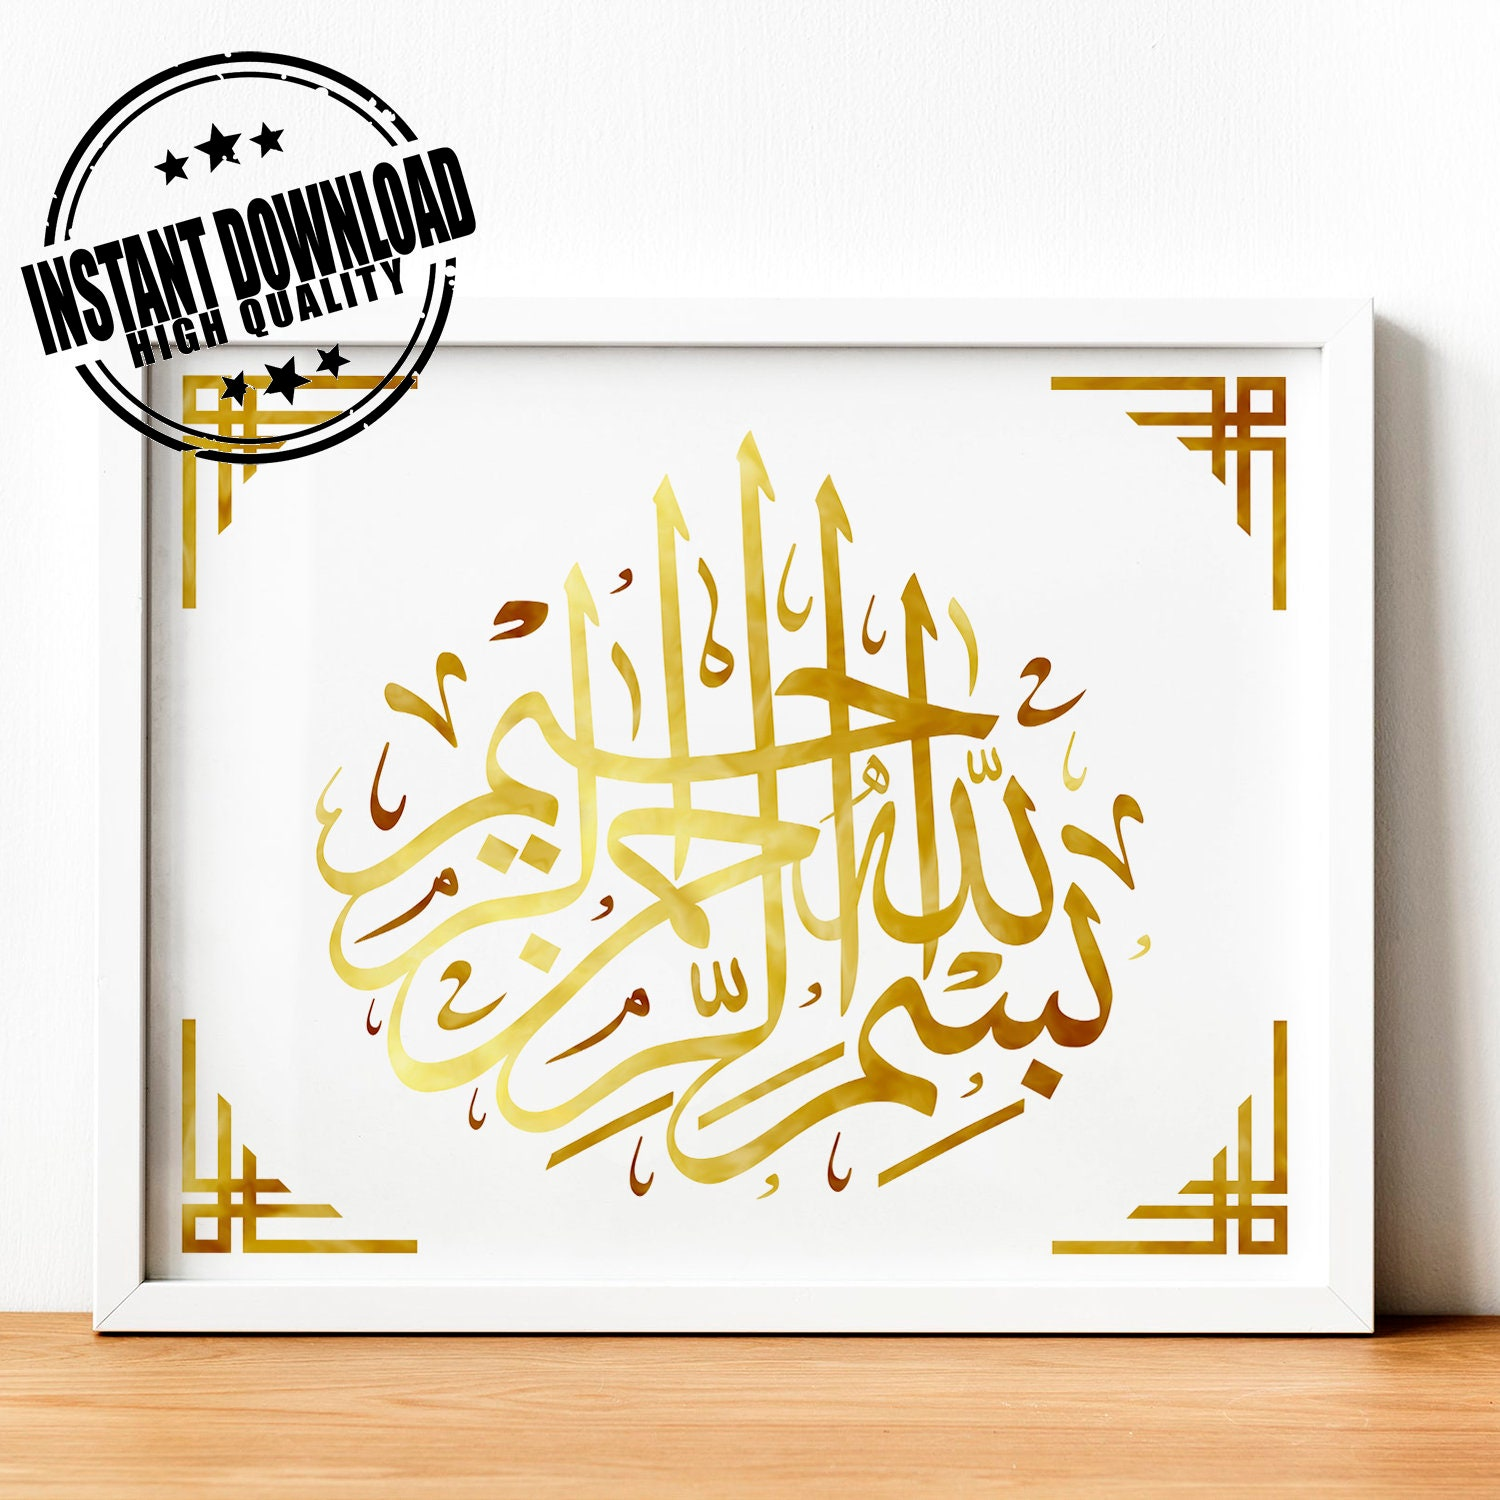 Bismillah arabic calligraphy wall art calligraphy art decor islamic wall art islamic calligraphy bismillah wall art